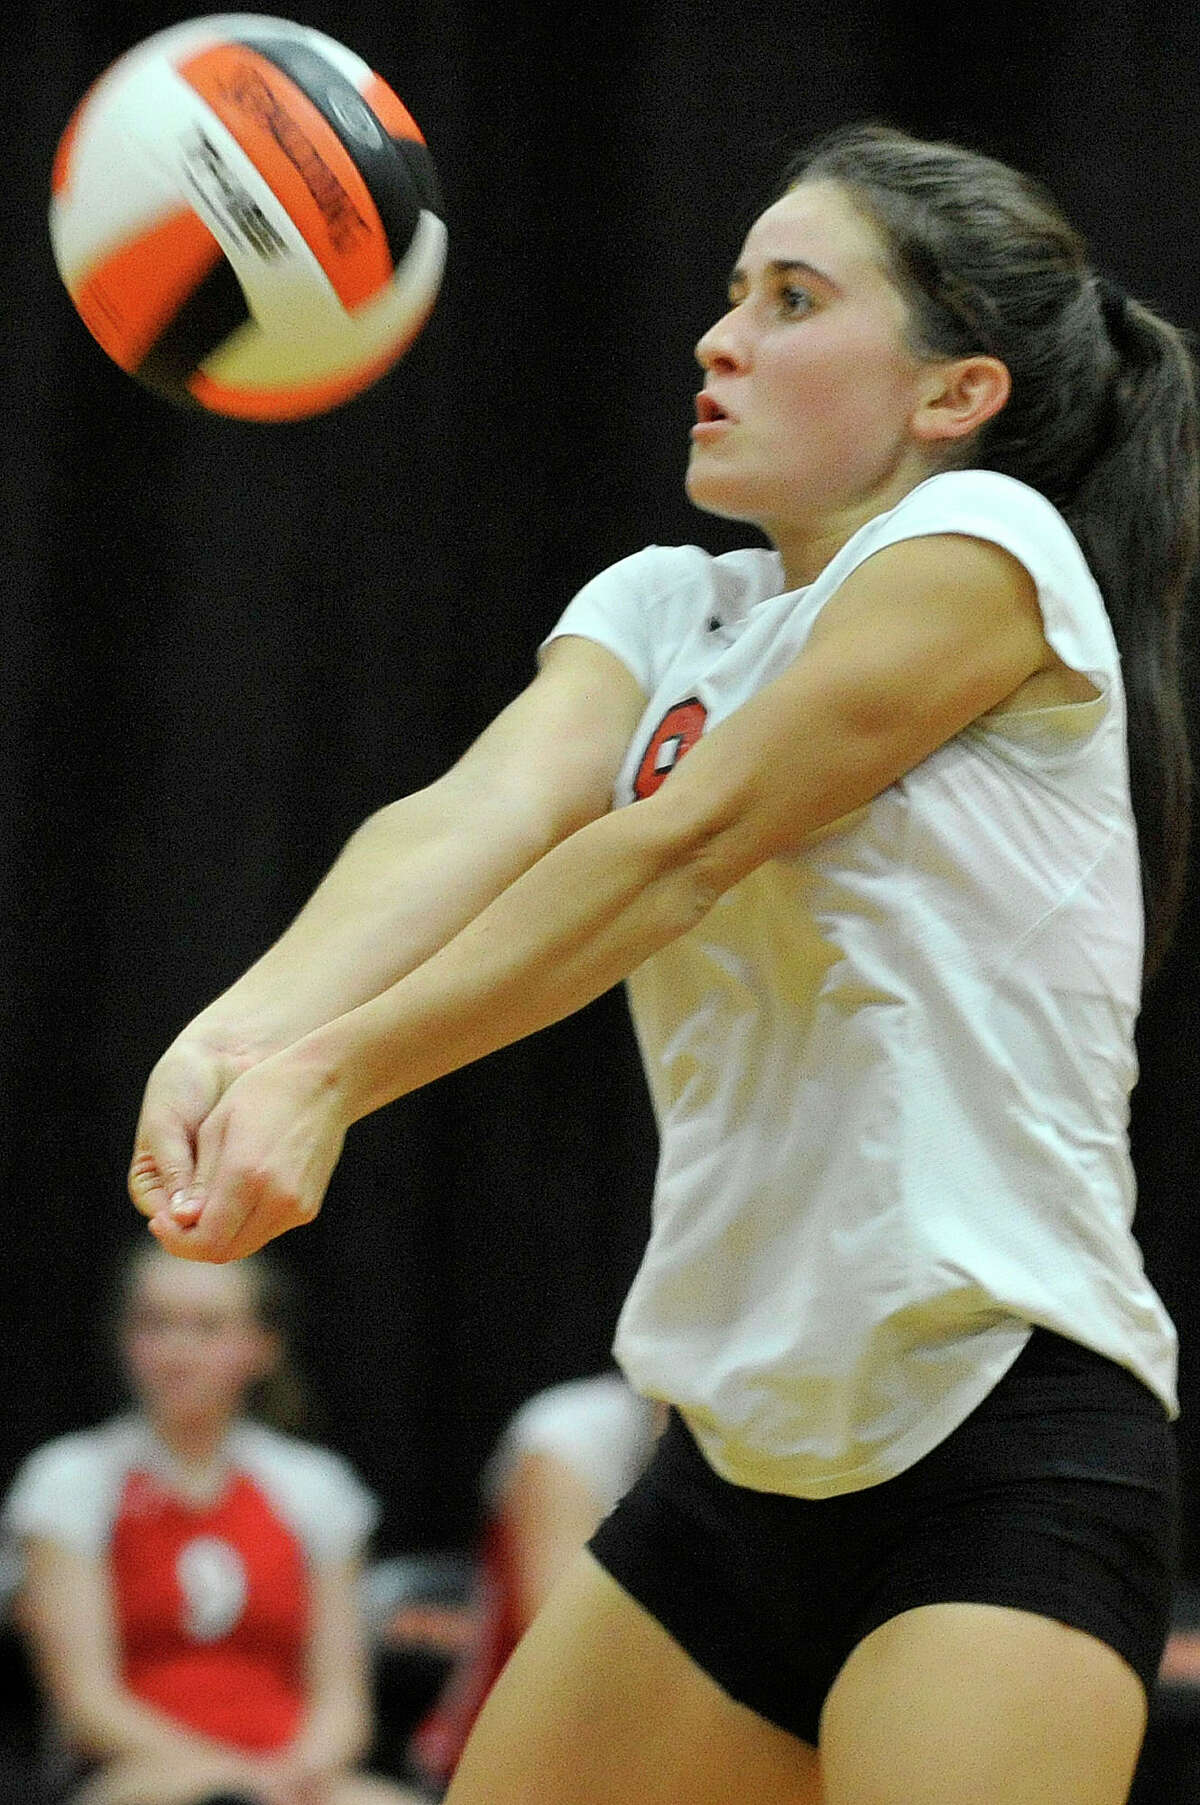 Greenwich's Micaela Lew keeps the ball alive during the Cardinals Class LL second round playoff volleyball match against Stamford at Stamford High School in Stamford, Conn., on Thursday, Nov. 6, 2014. Stamford won, 3-2.